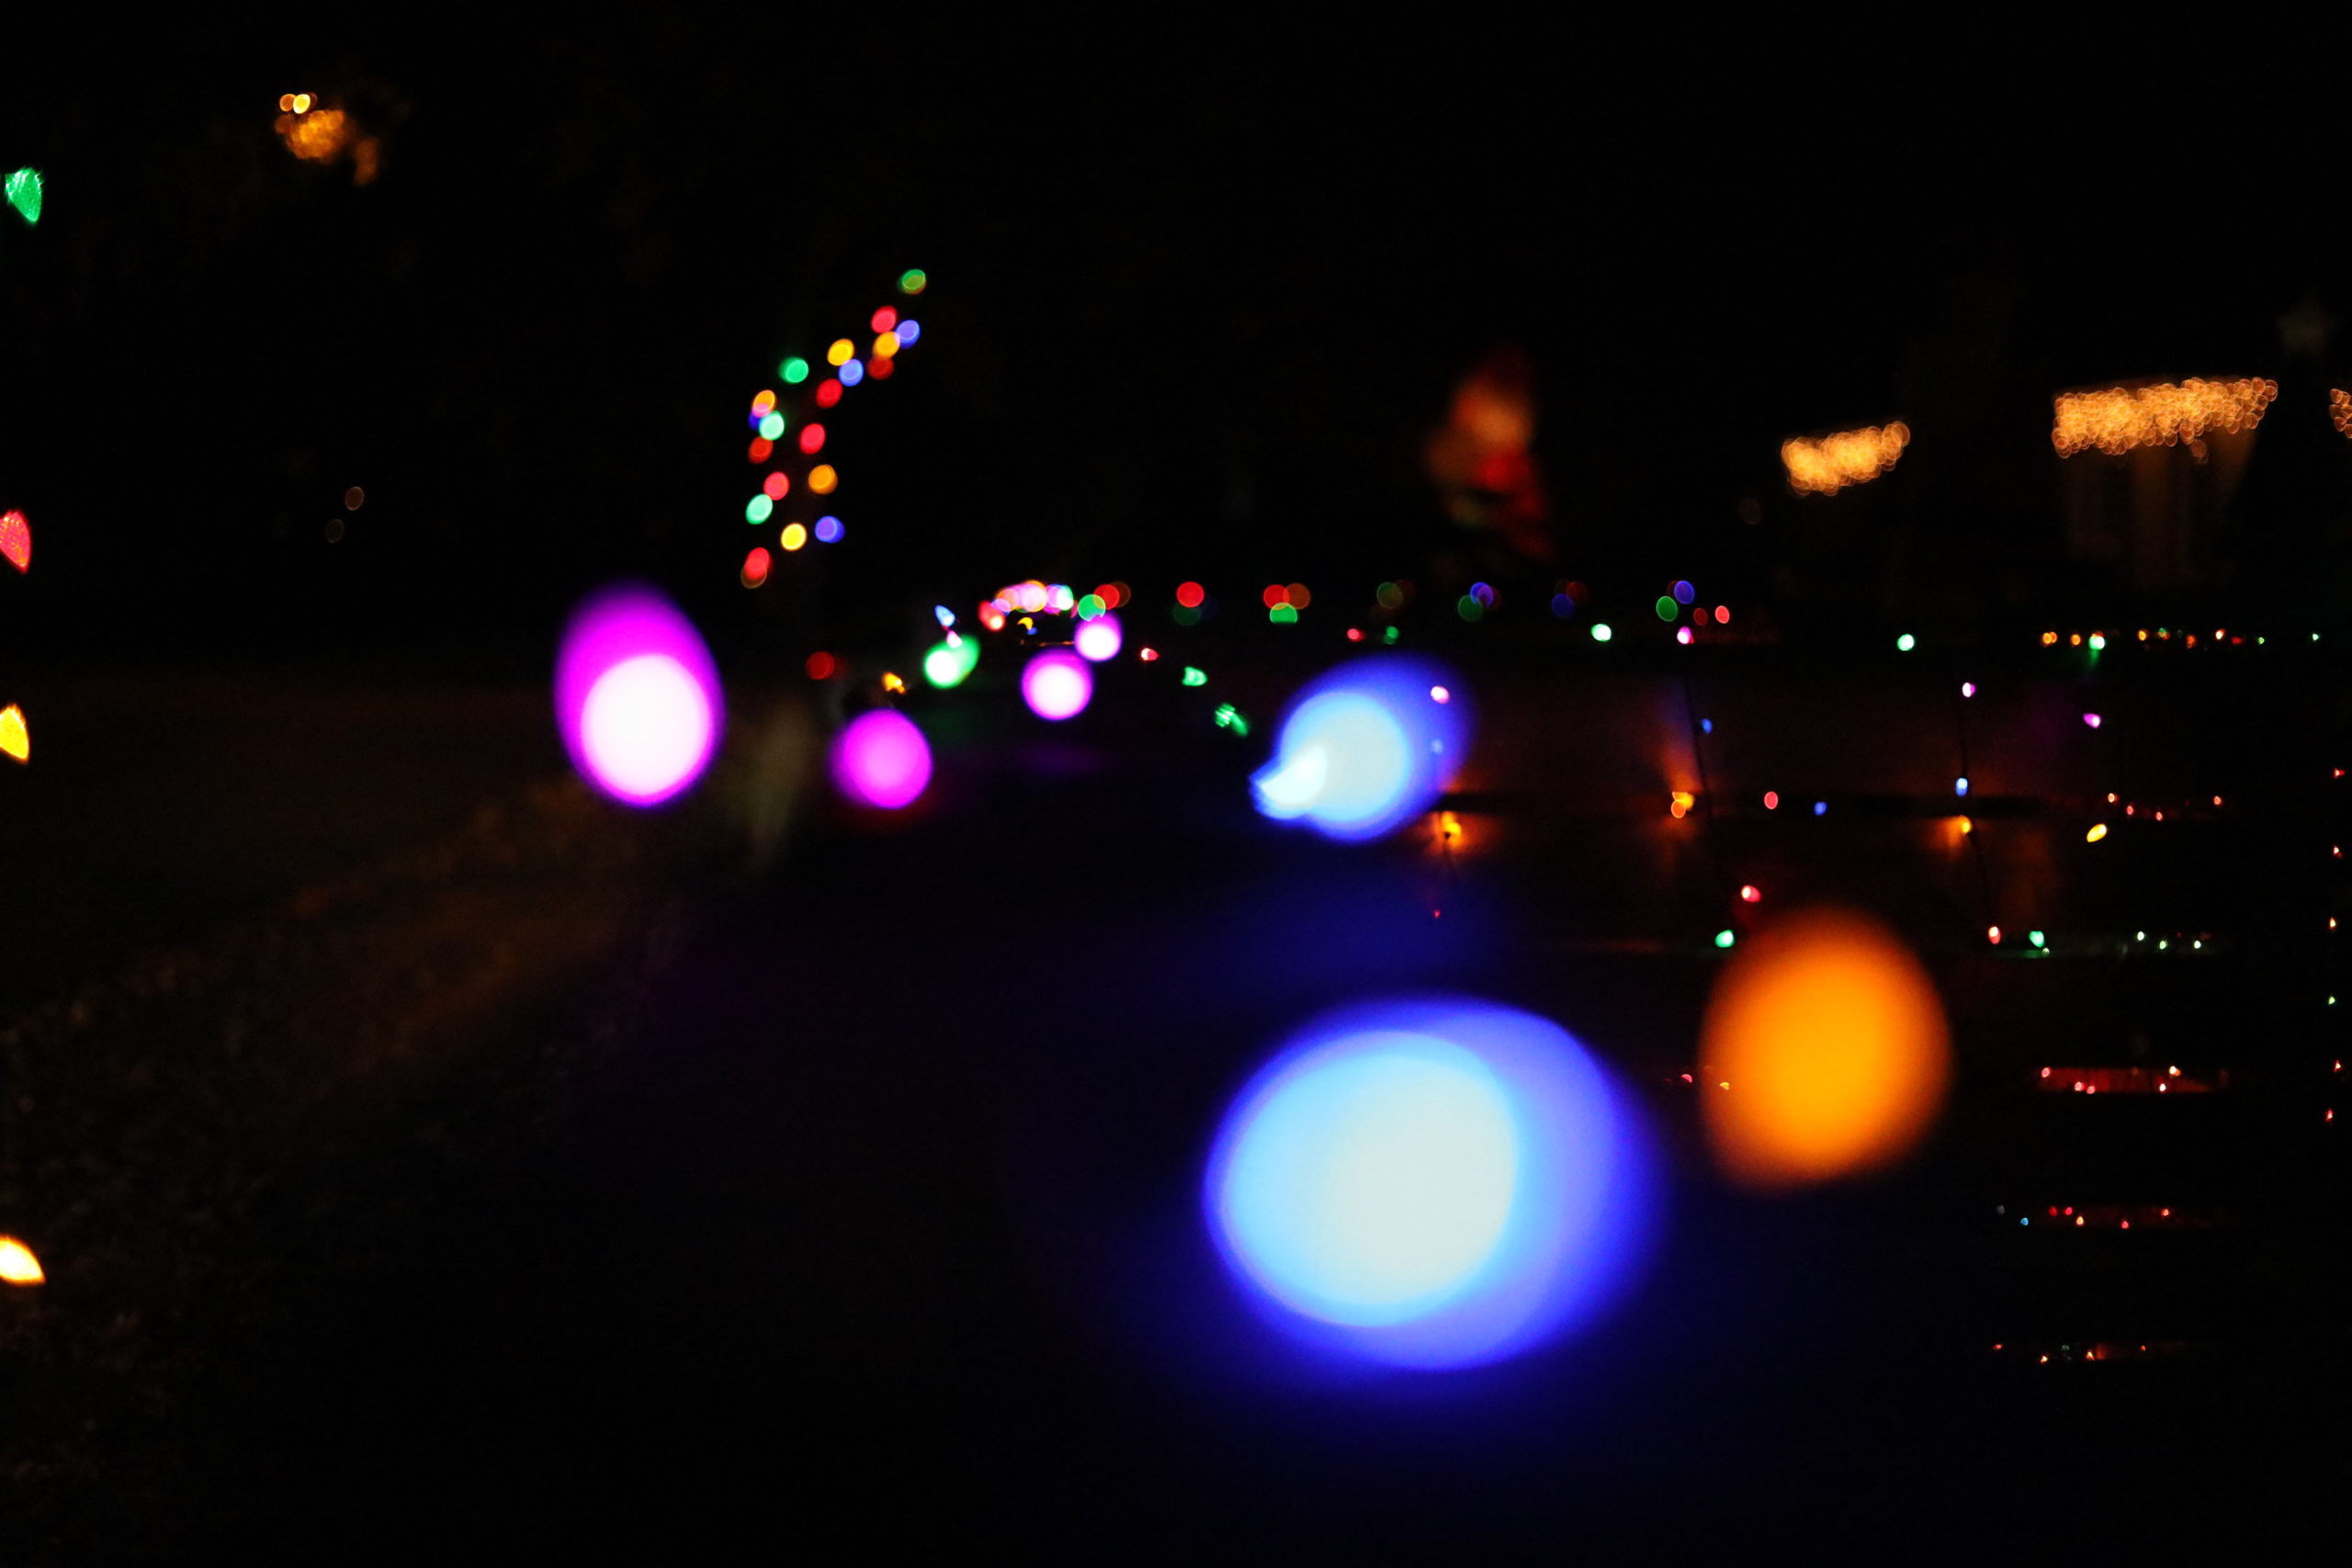 Photo Essay: Festive Lights Jazz Up the Neighborhood